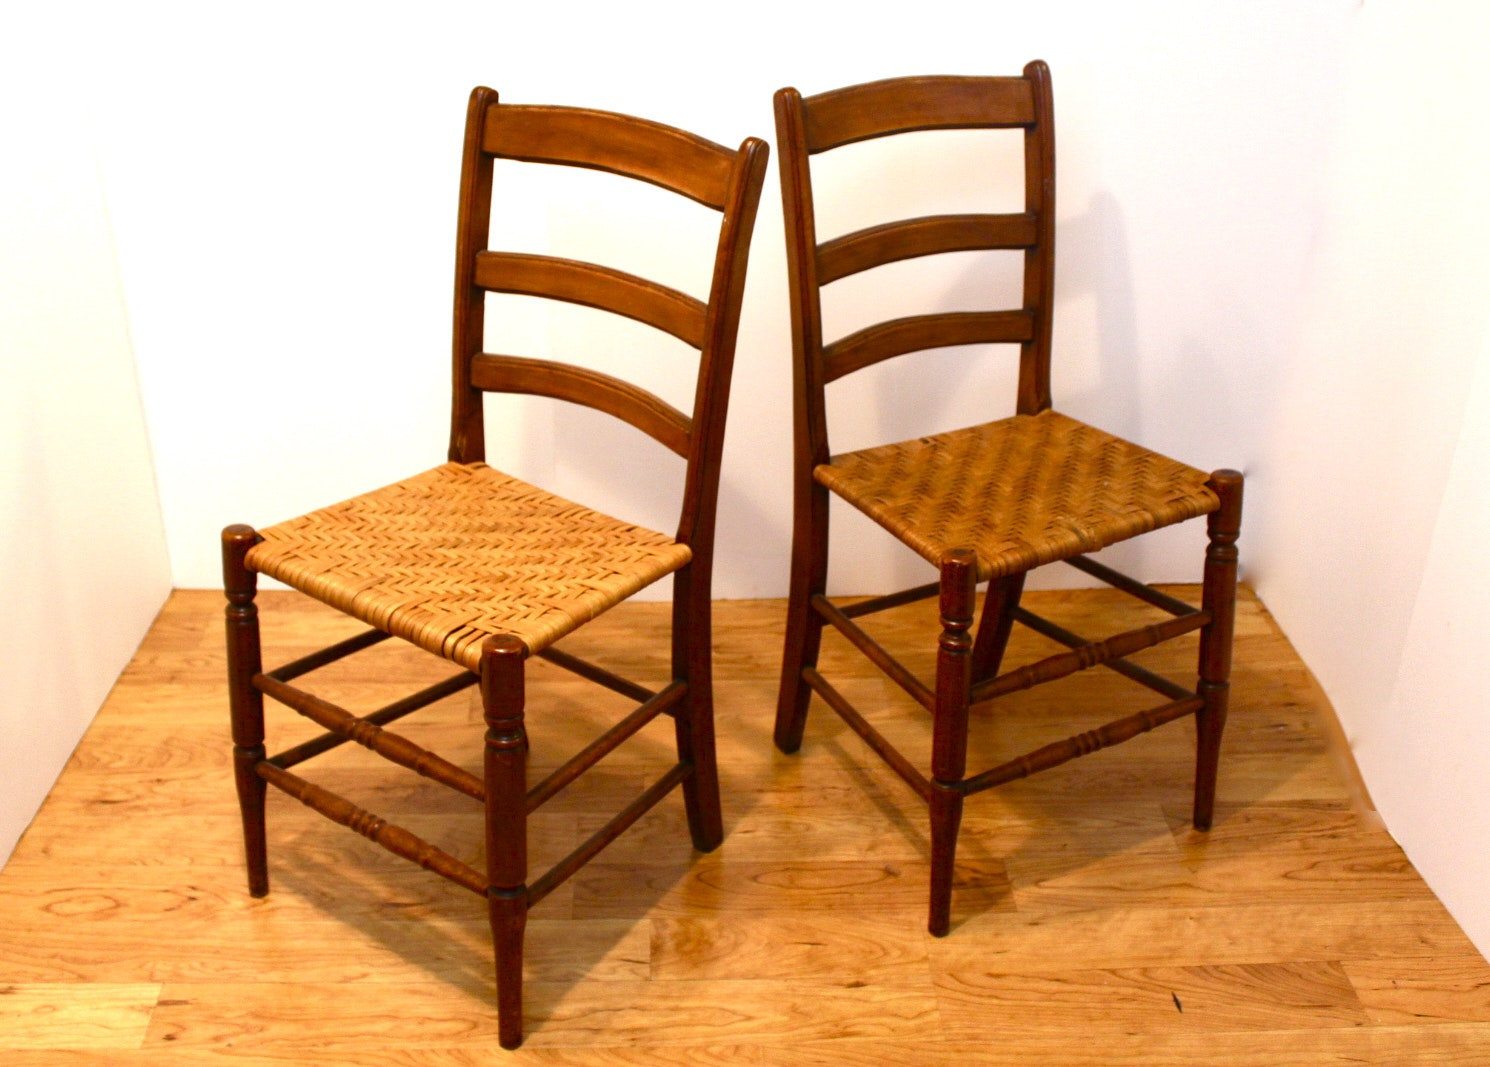 Pair Of Shaker Style Chairs With Slat Backs And Woven Seats ...